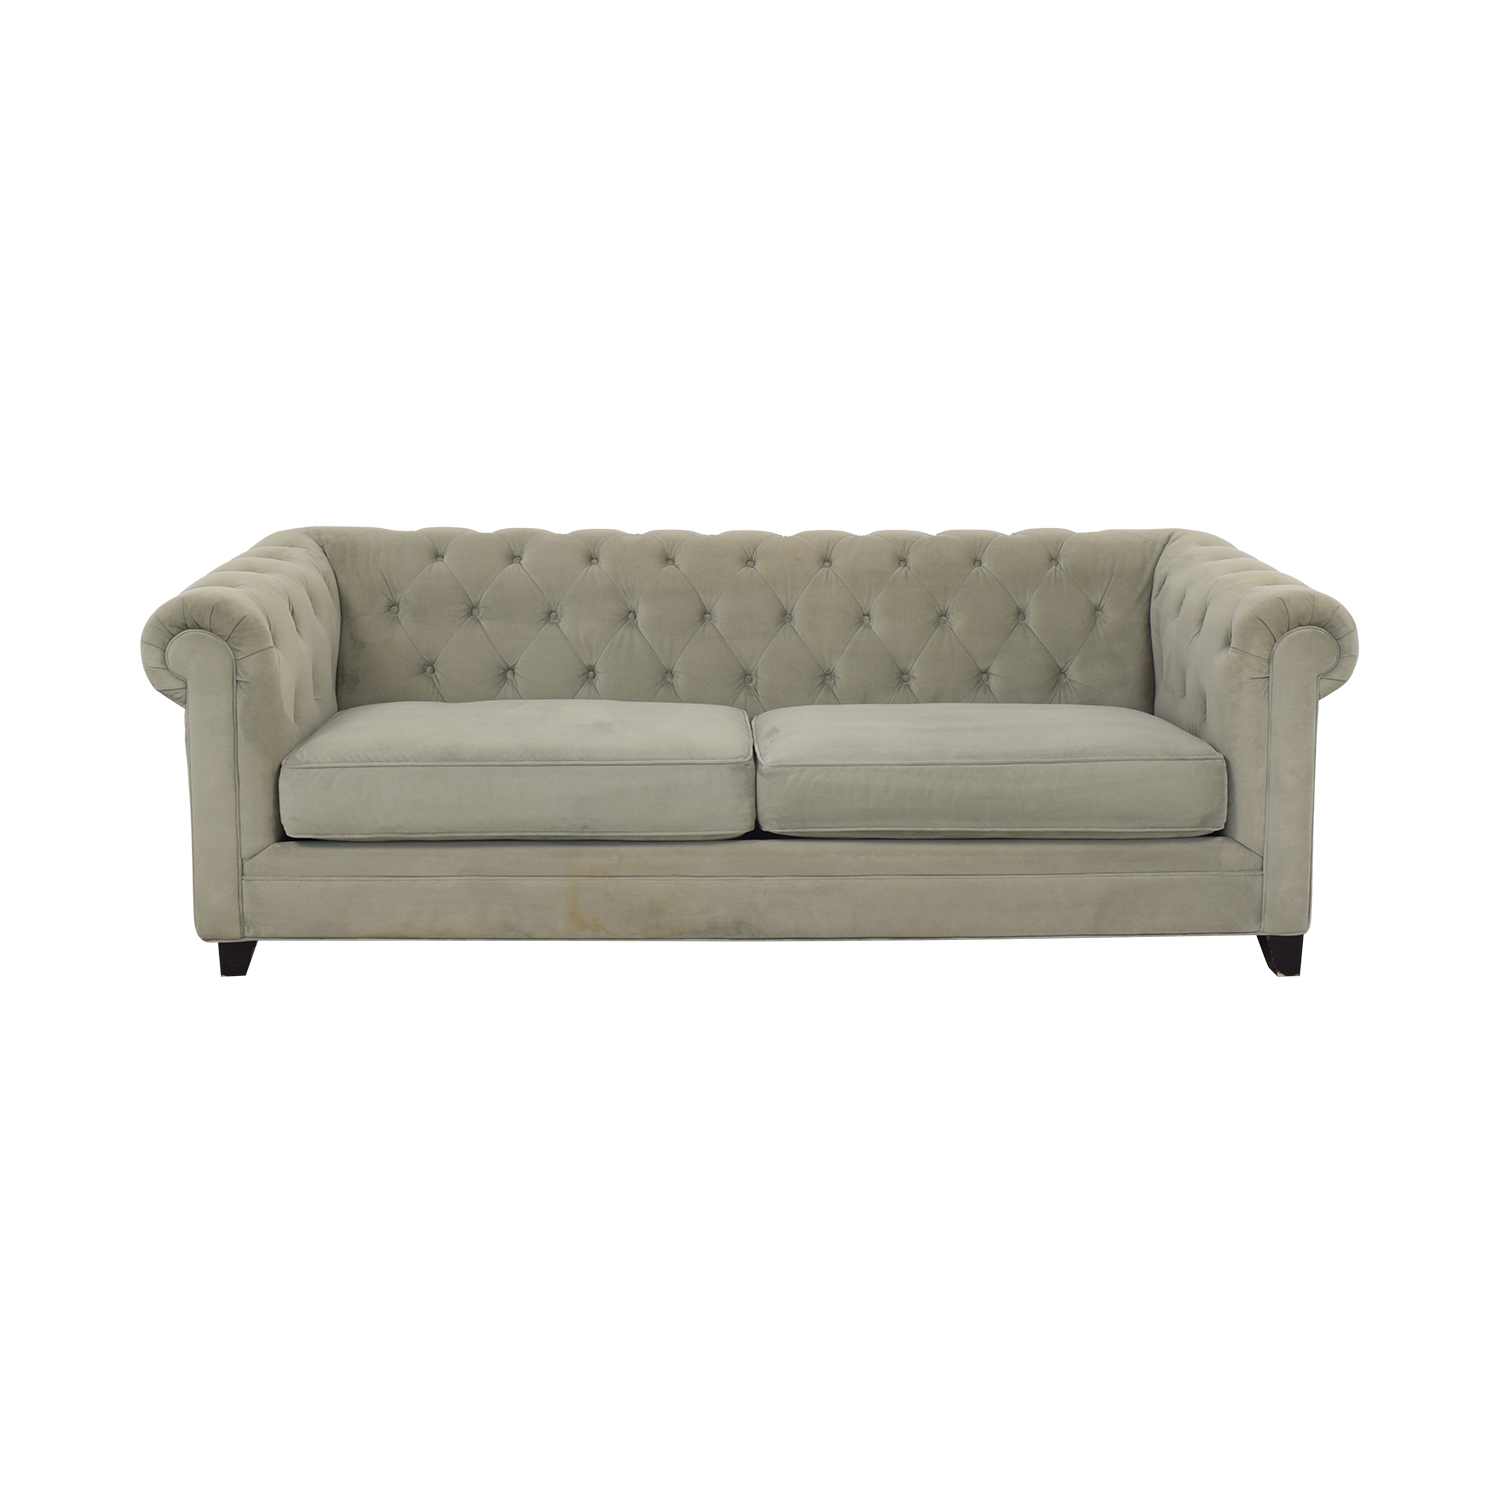 Jonathan Louis Jonathan Louis Martha Stewart Collection Saybridge Fabric Sofa light grey